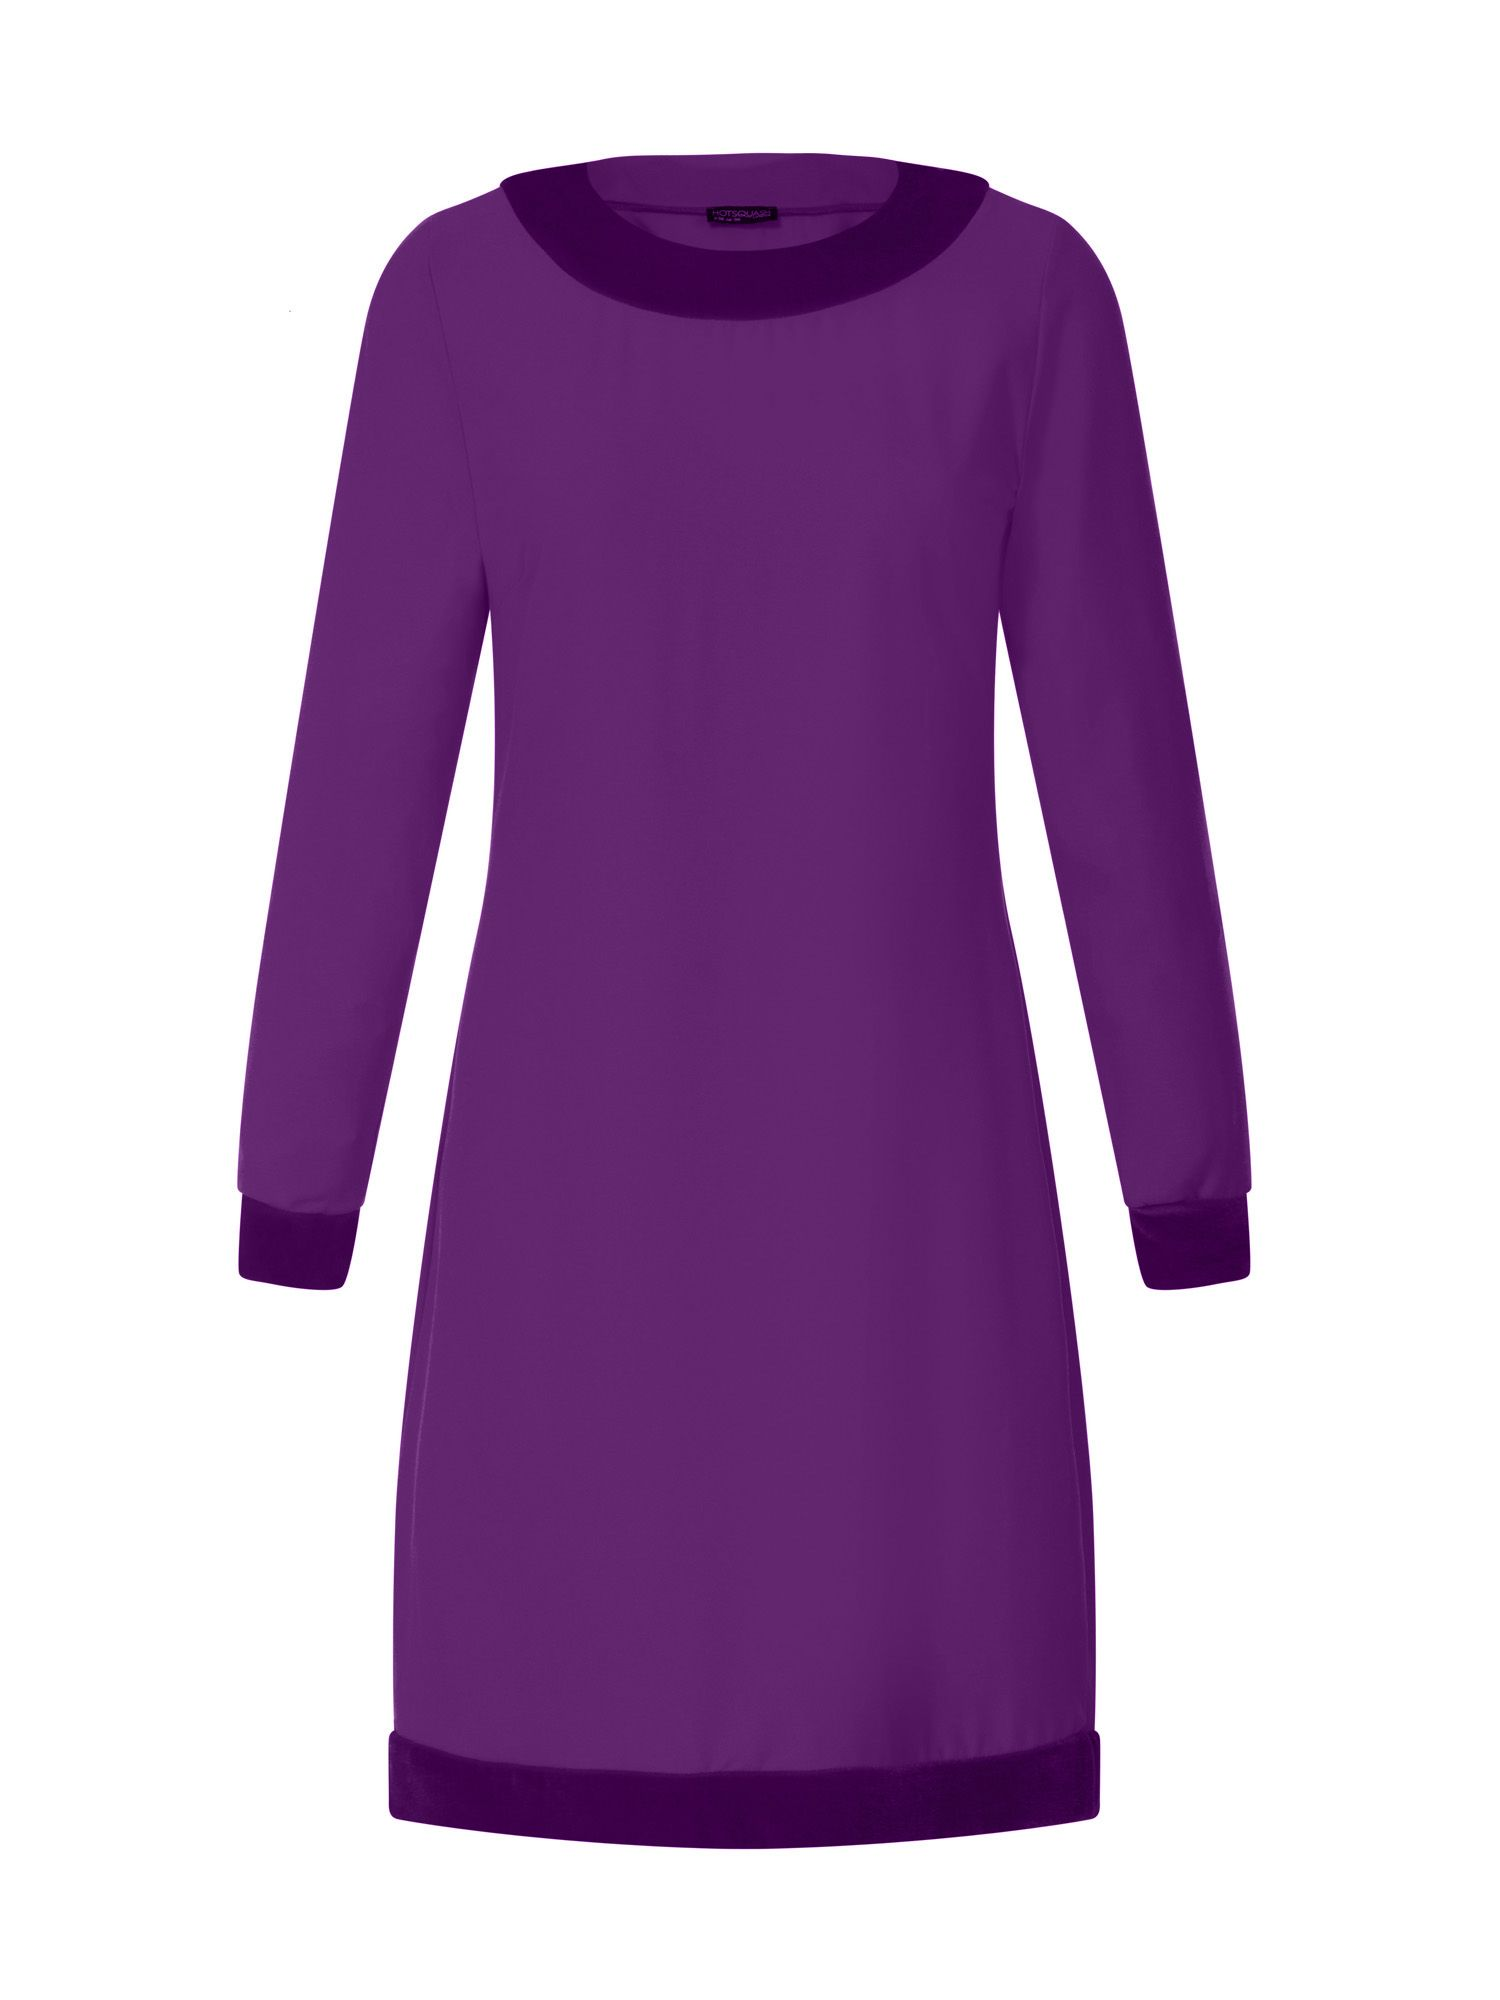 HotSquash Swing Dress with Velvet in Clever Fabric, Purple